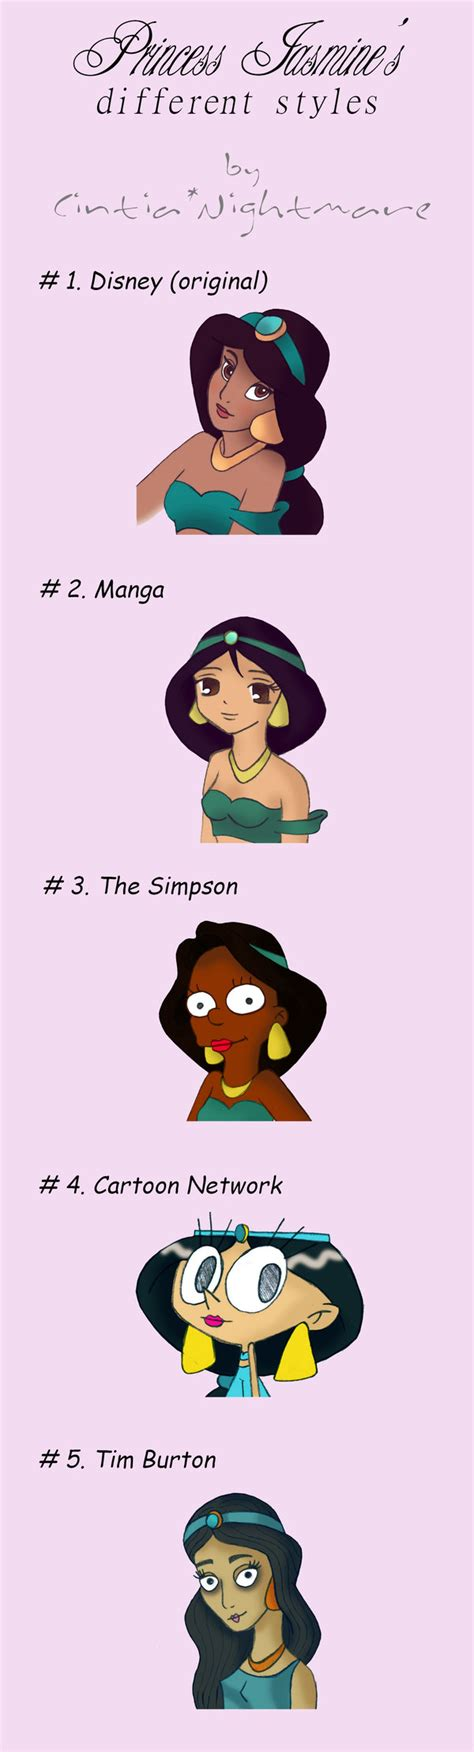 jasmine meme disney princess fan art 27383164 fanpop